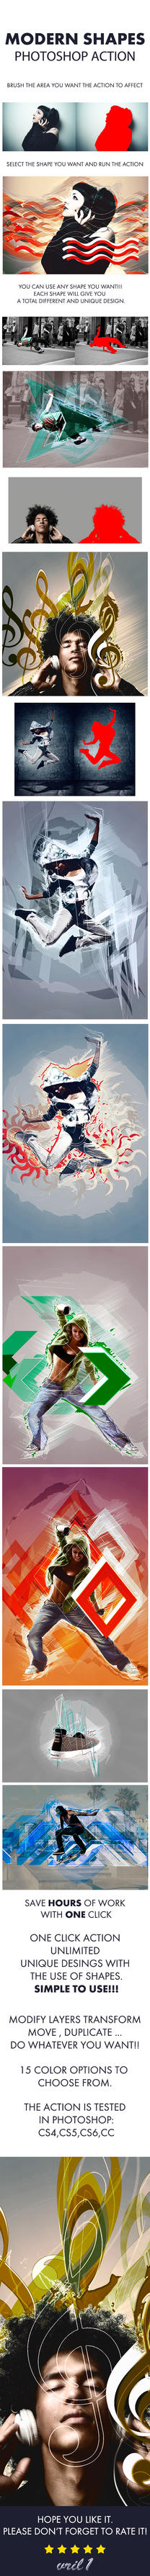 Modern shapes photoshop action by vril1